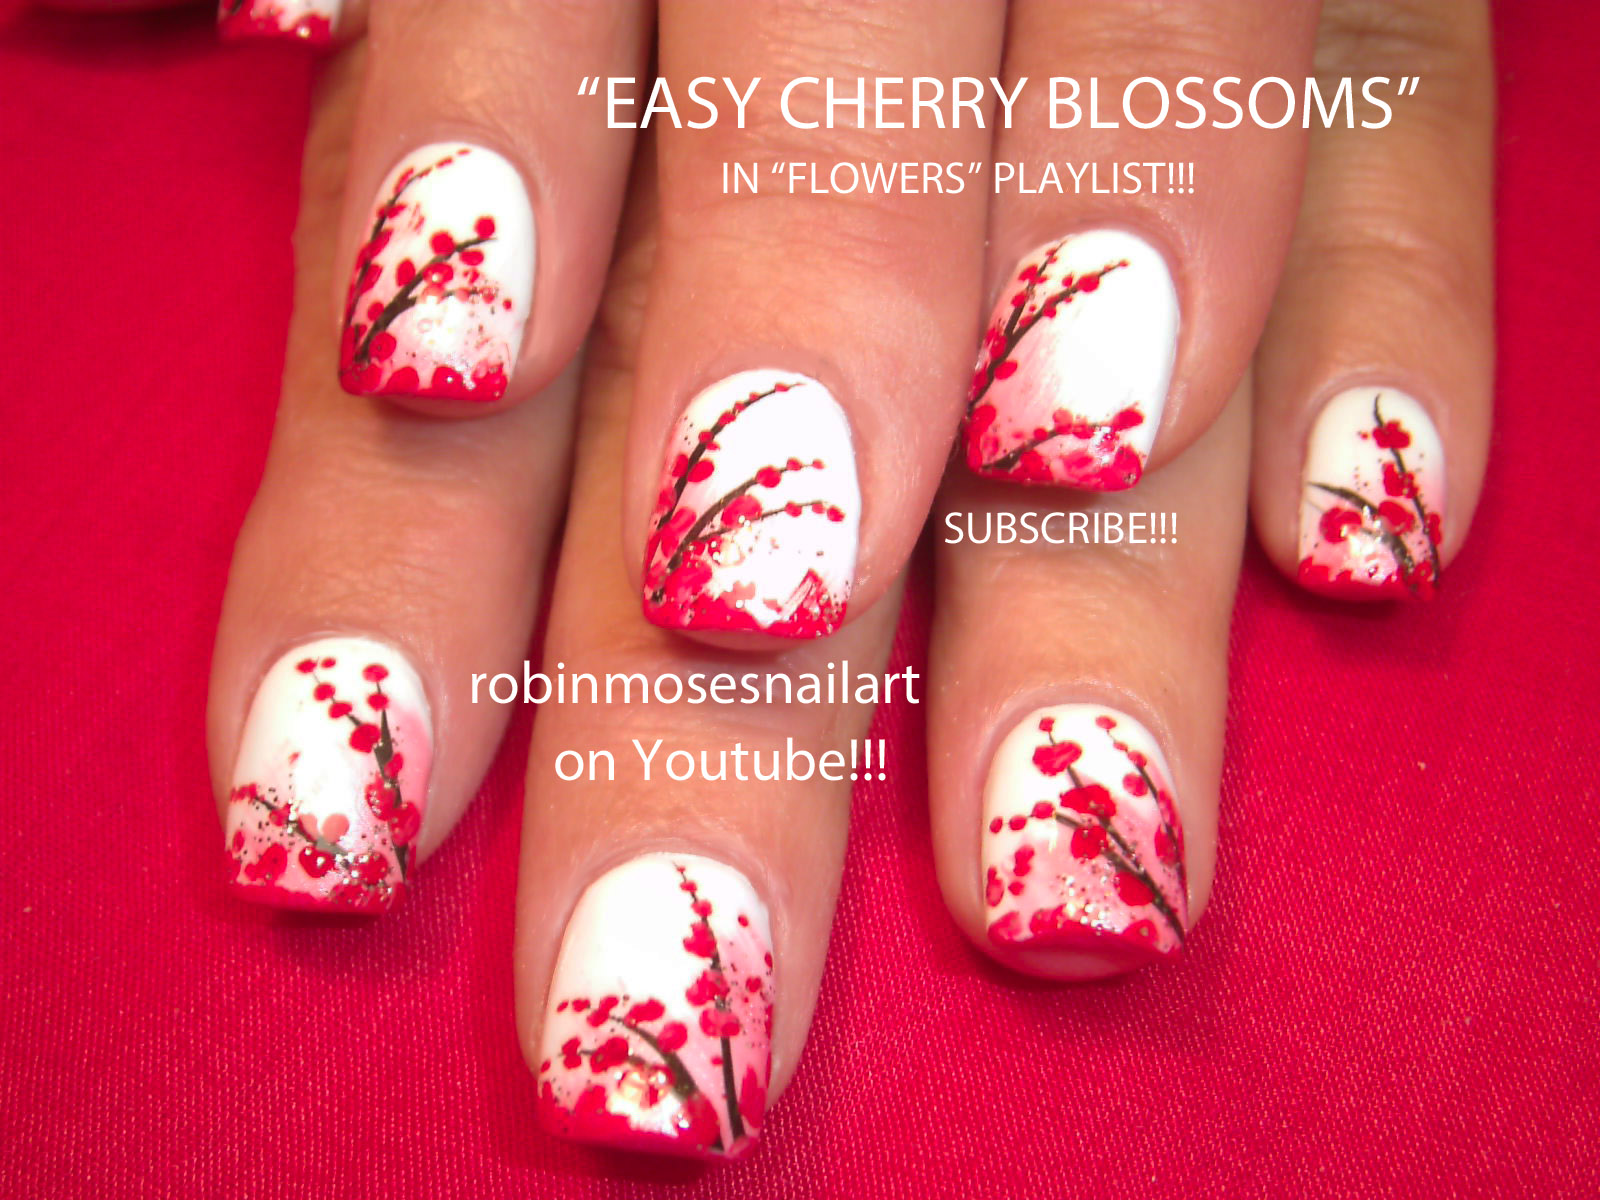 Cherry Blossom Nail Art Red Blossoms Easy Nails Fall Cute Ideas Best Ever Fun